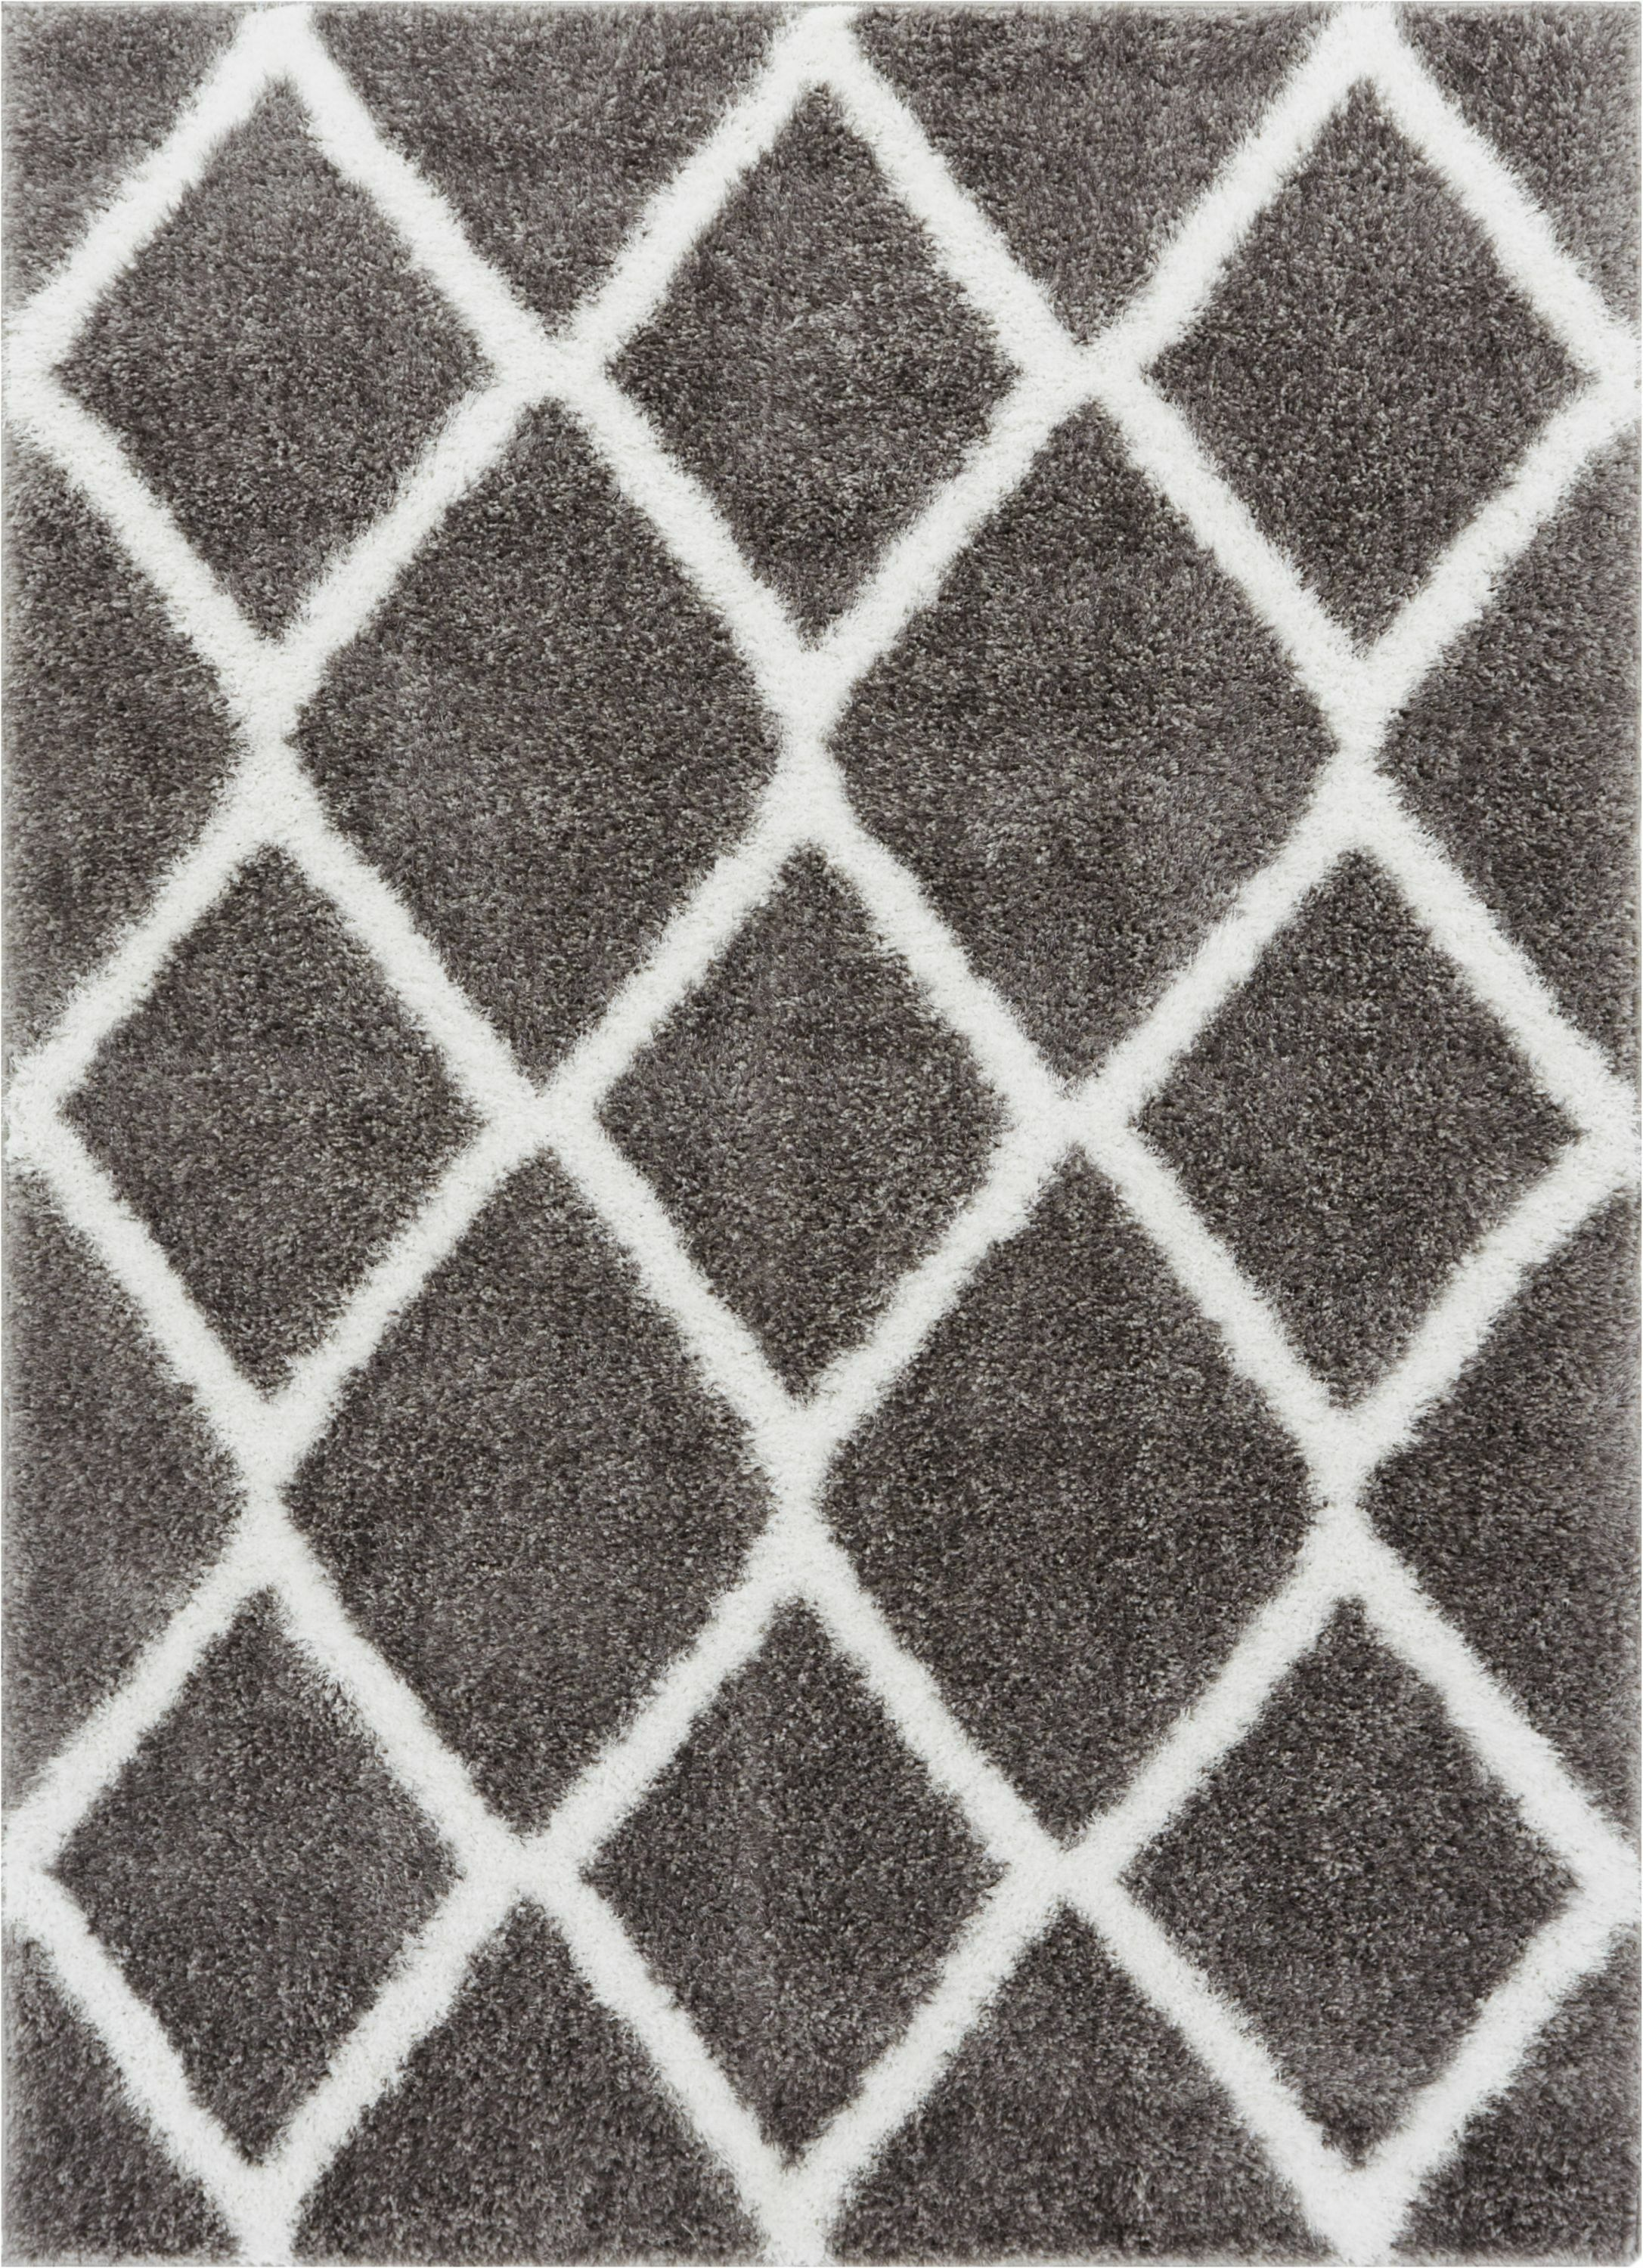 Puentes Shag Gray Area Rug Rug Size: Rectangle 6'7